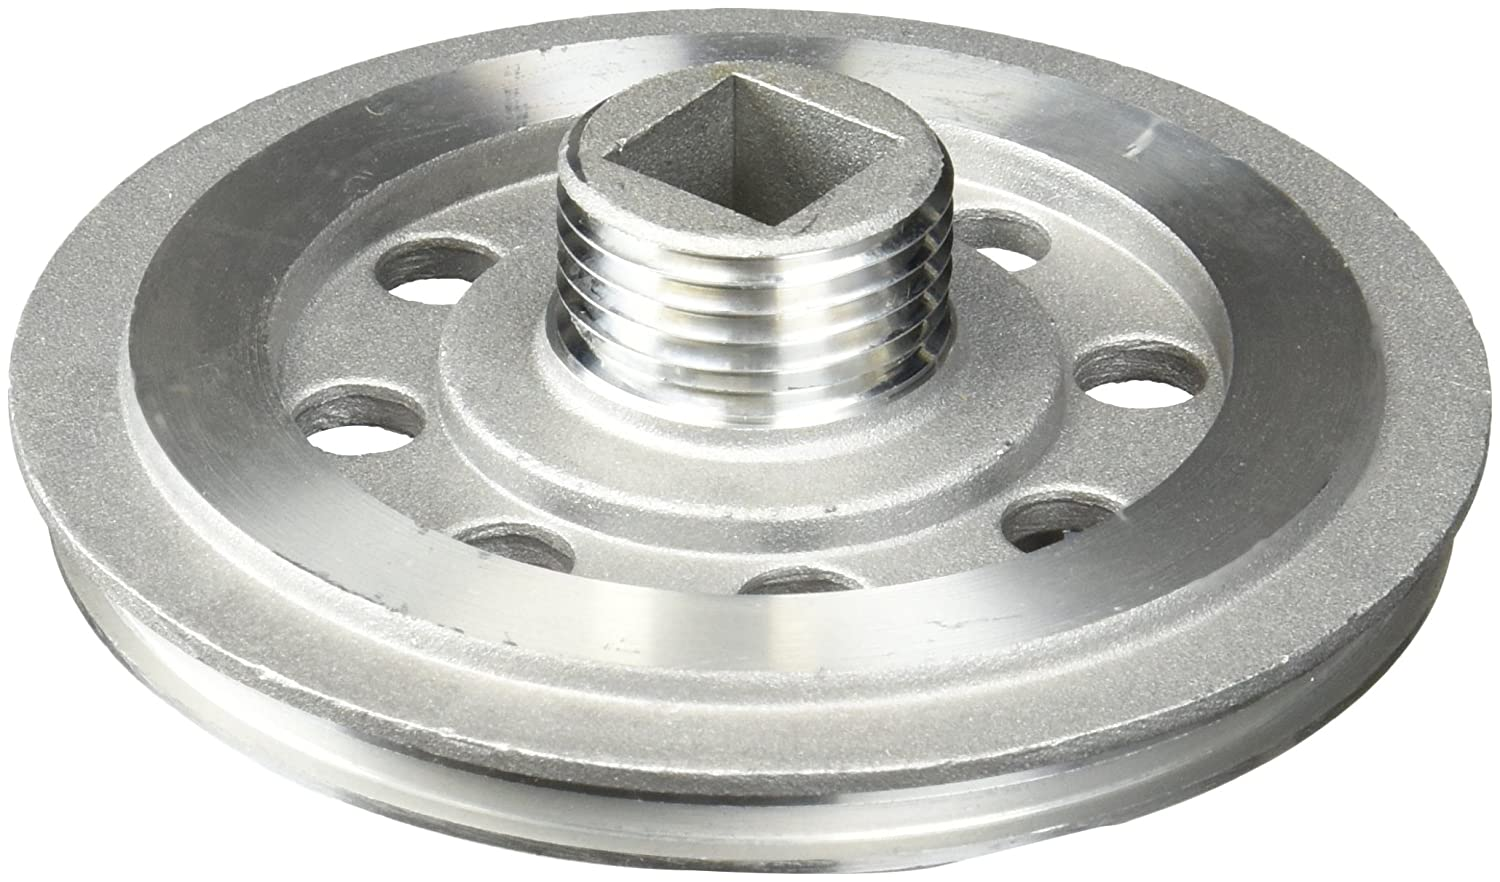 Baldwin FD7926 Fuel Filter Base